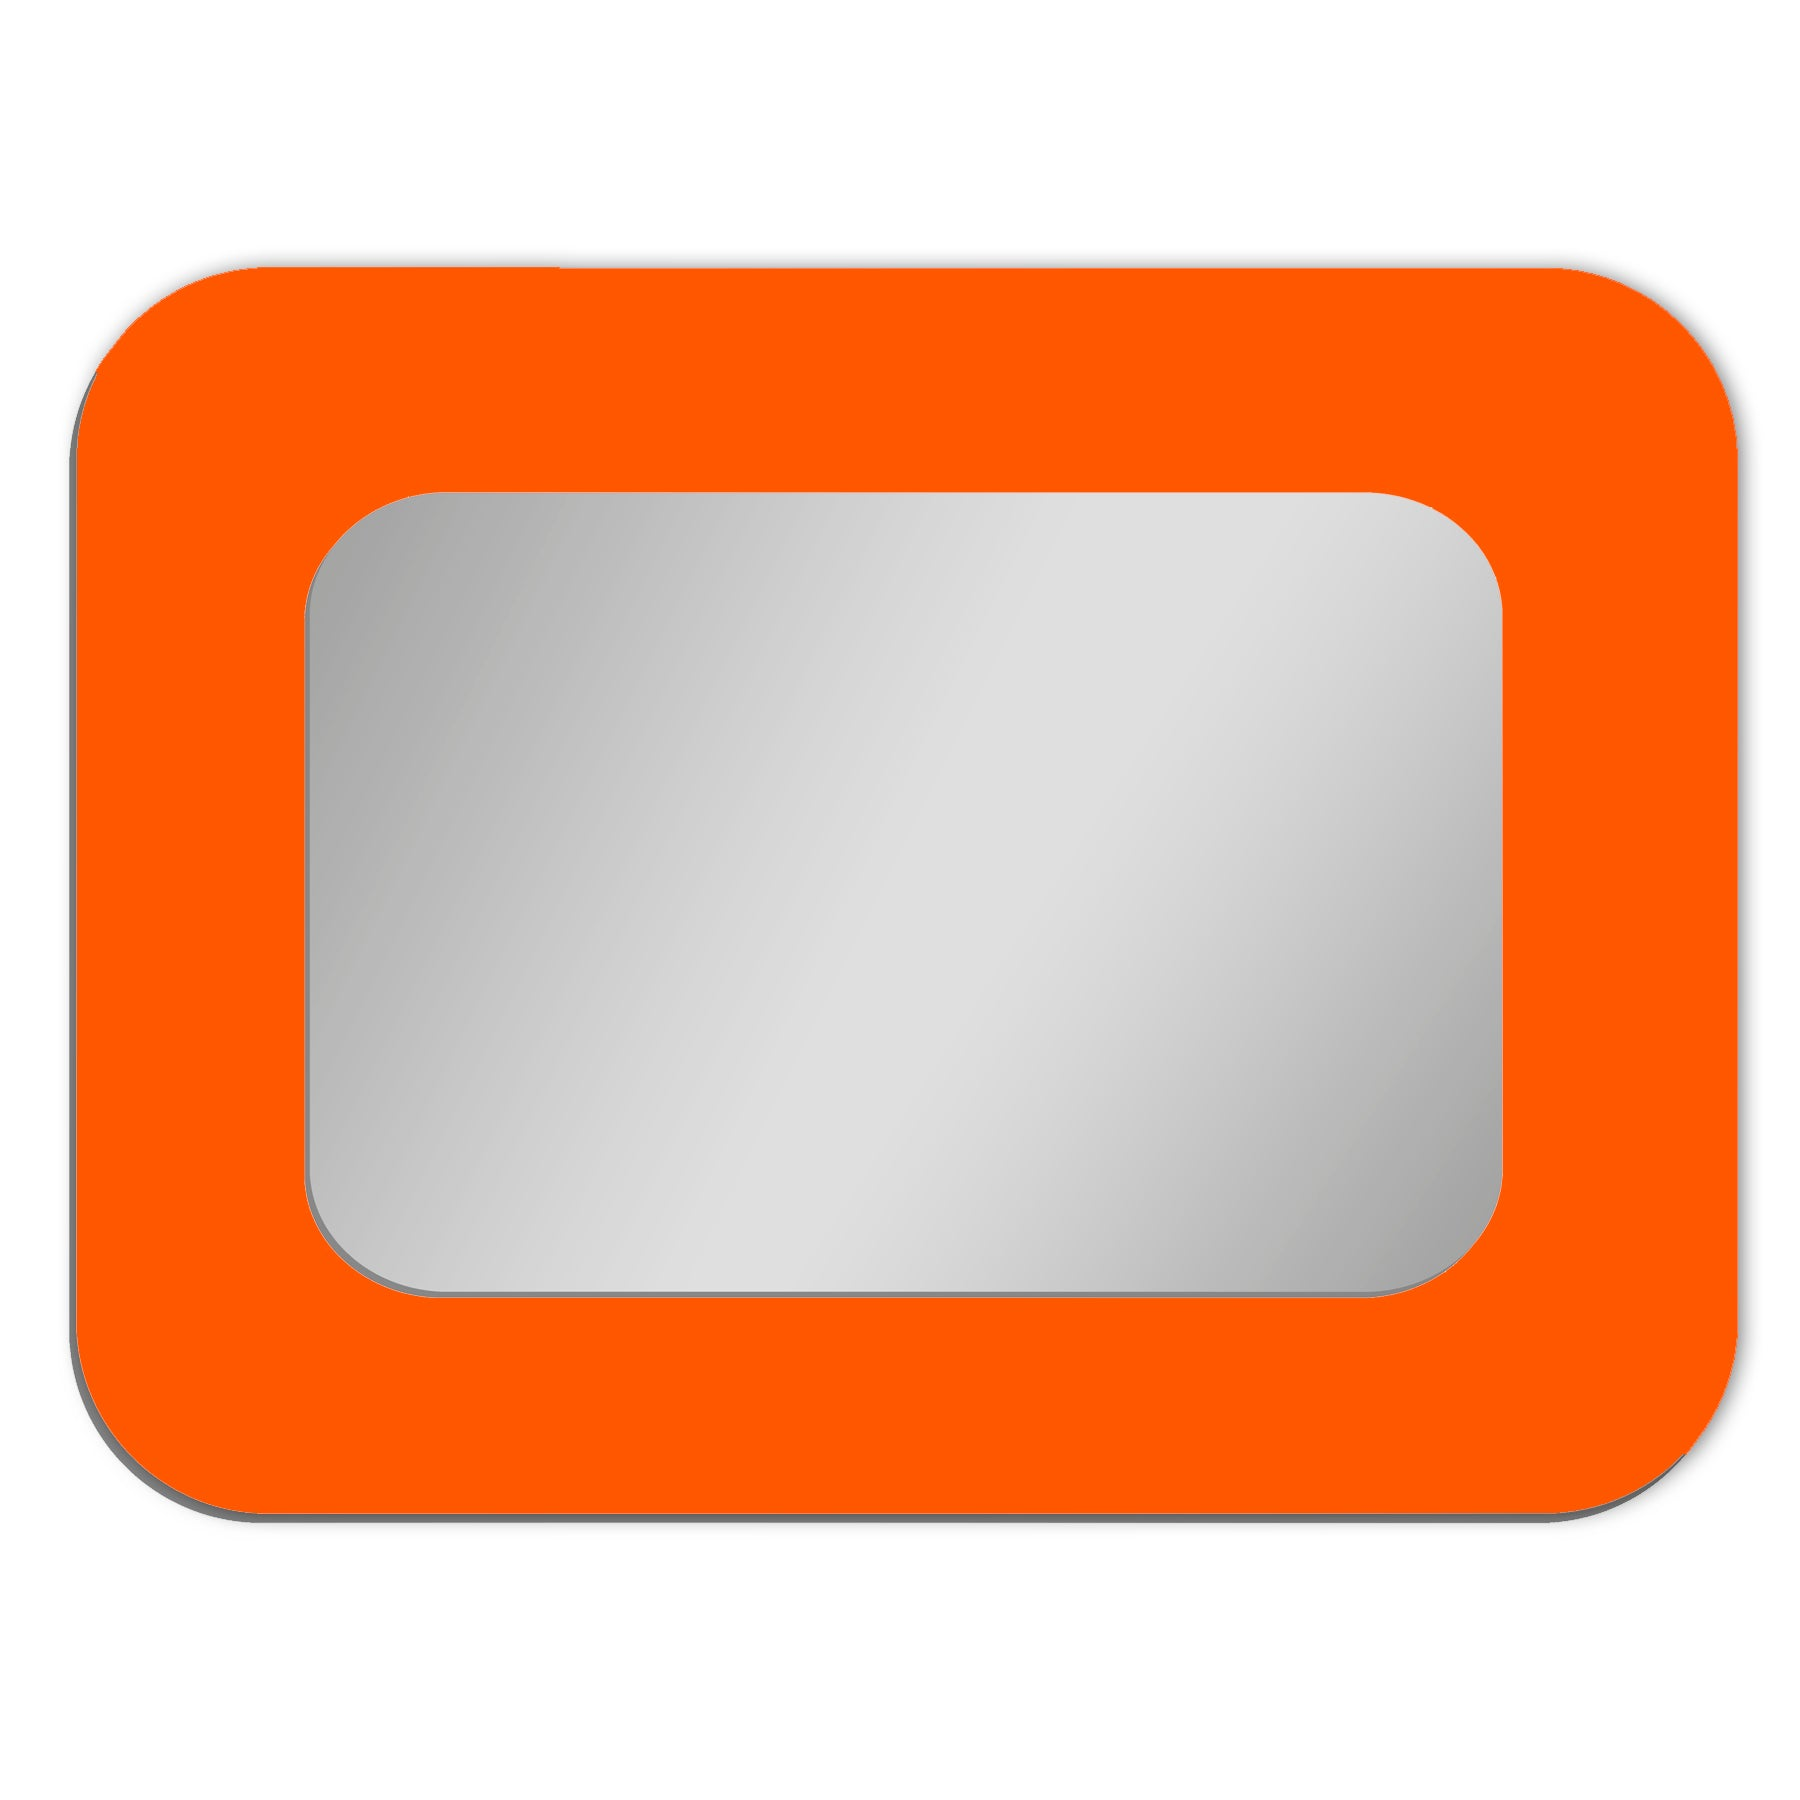 Frame Mounted Mirror - RECTANGLE Rounded | Glossy Gallery